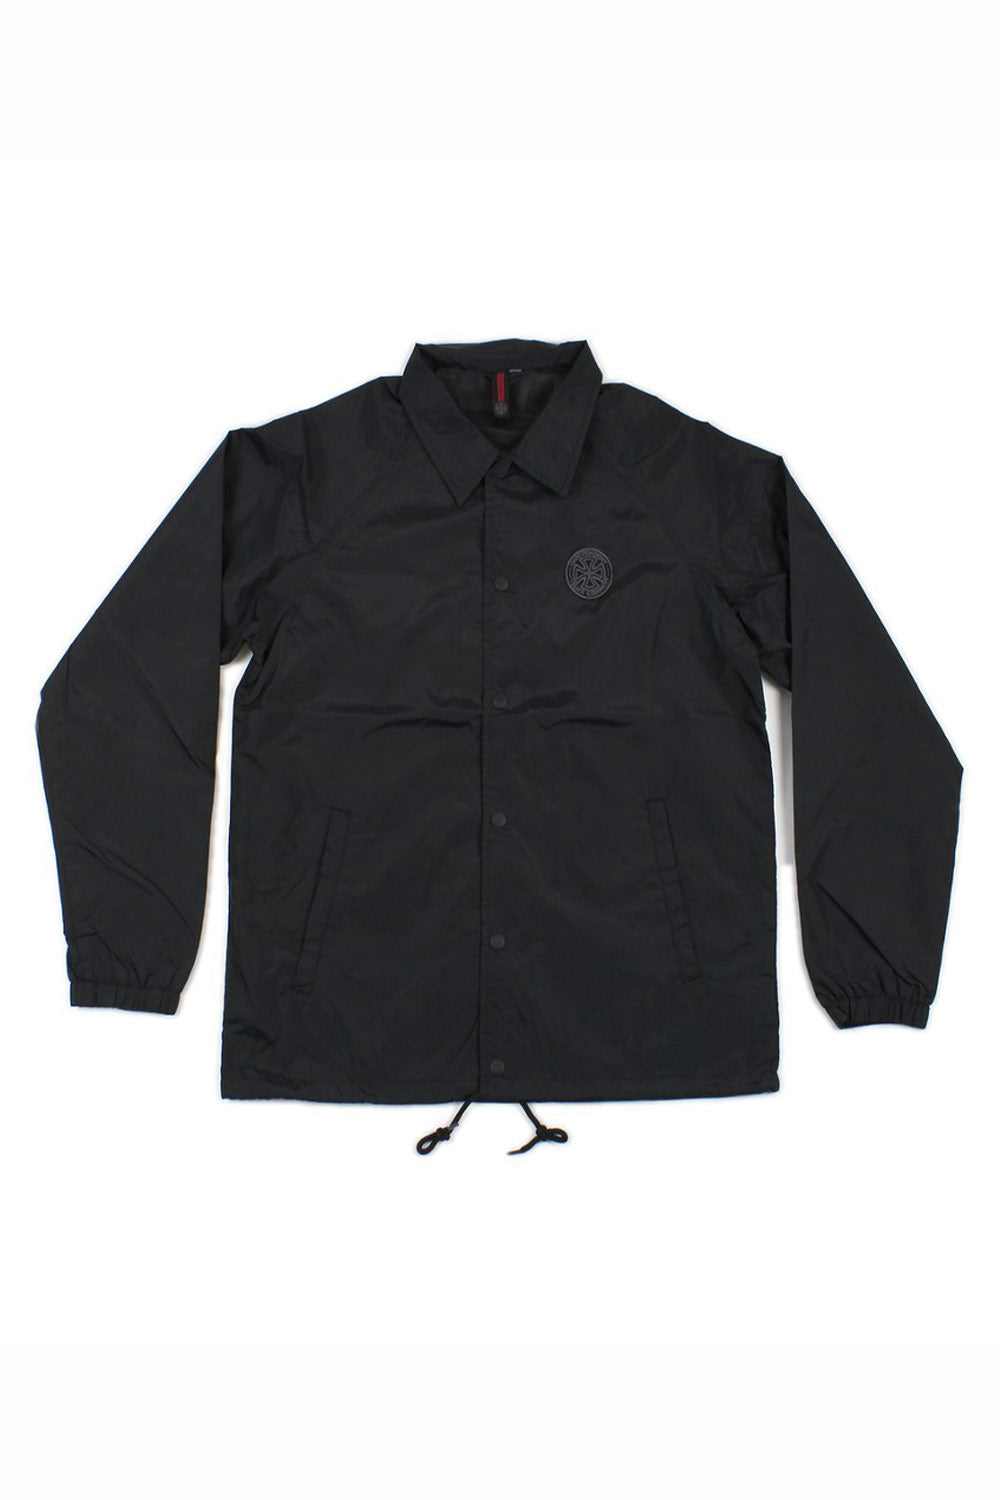 Independent Bar Cross Coach Jacket | Buy Independent Trucks Jacket